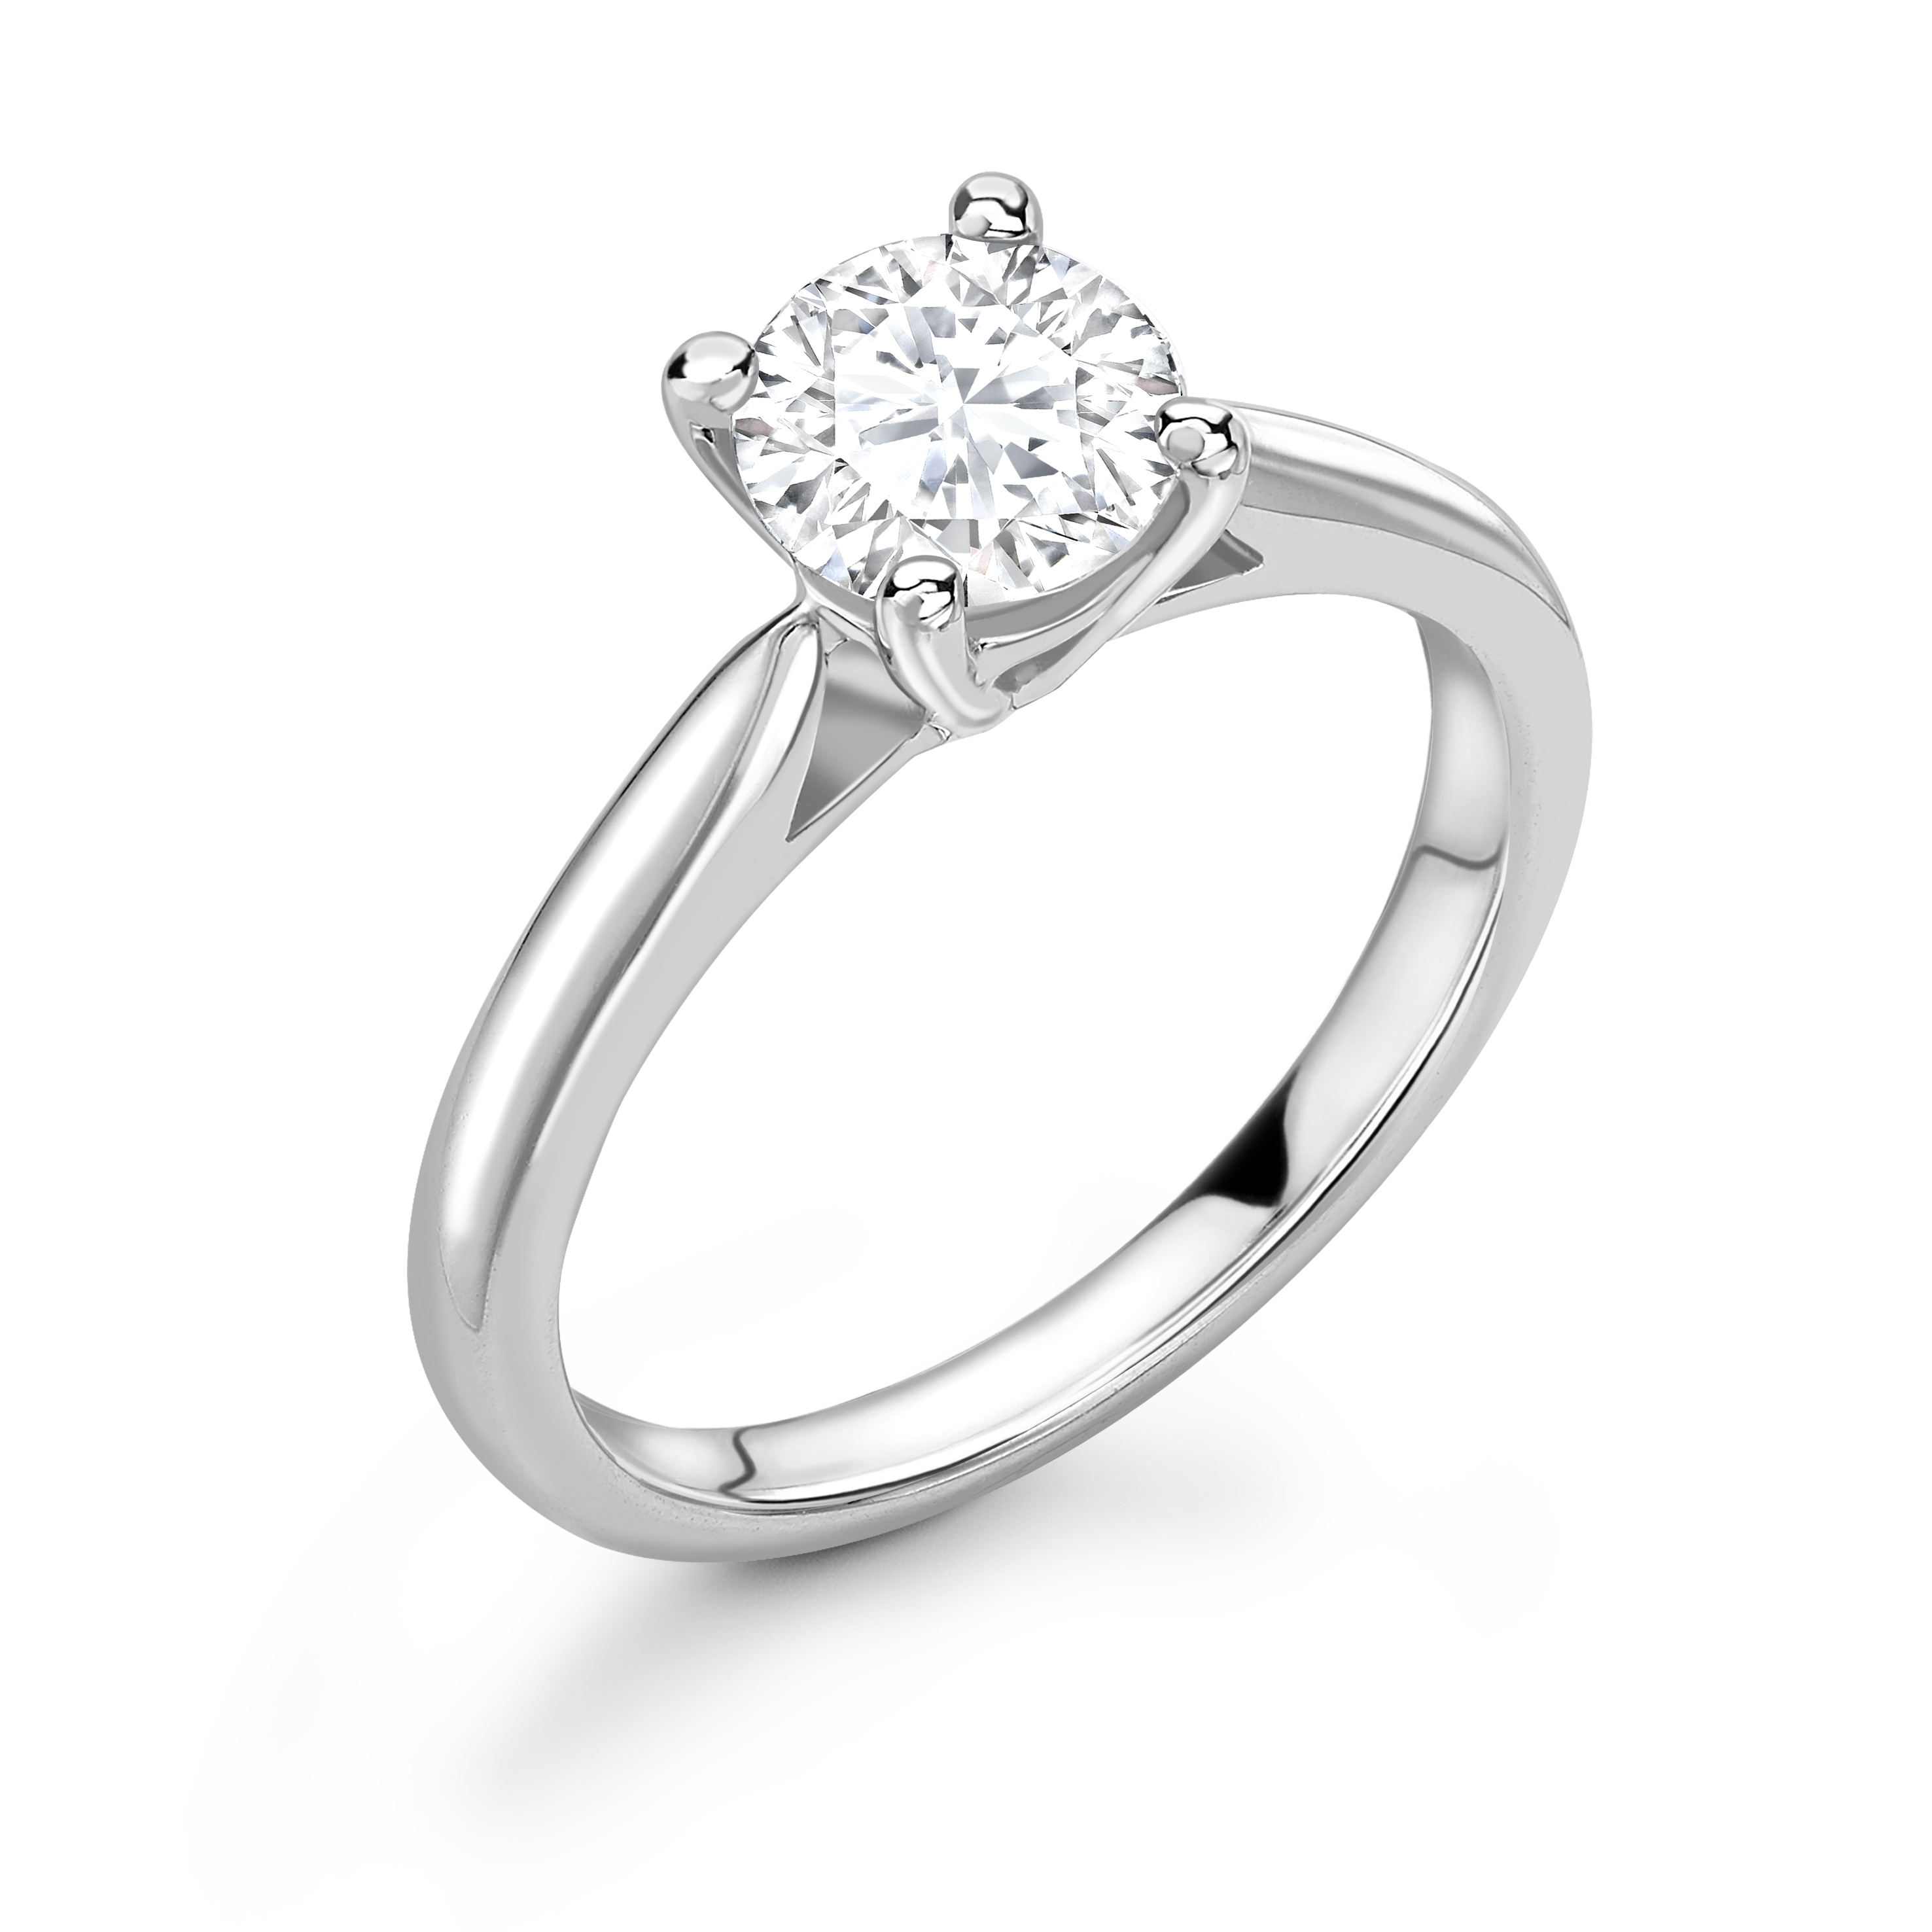 18ct White Gold Claw Set Diamond Ring 0.50 Carats